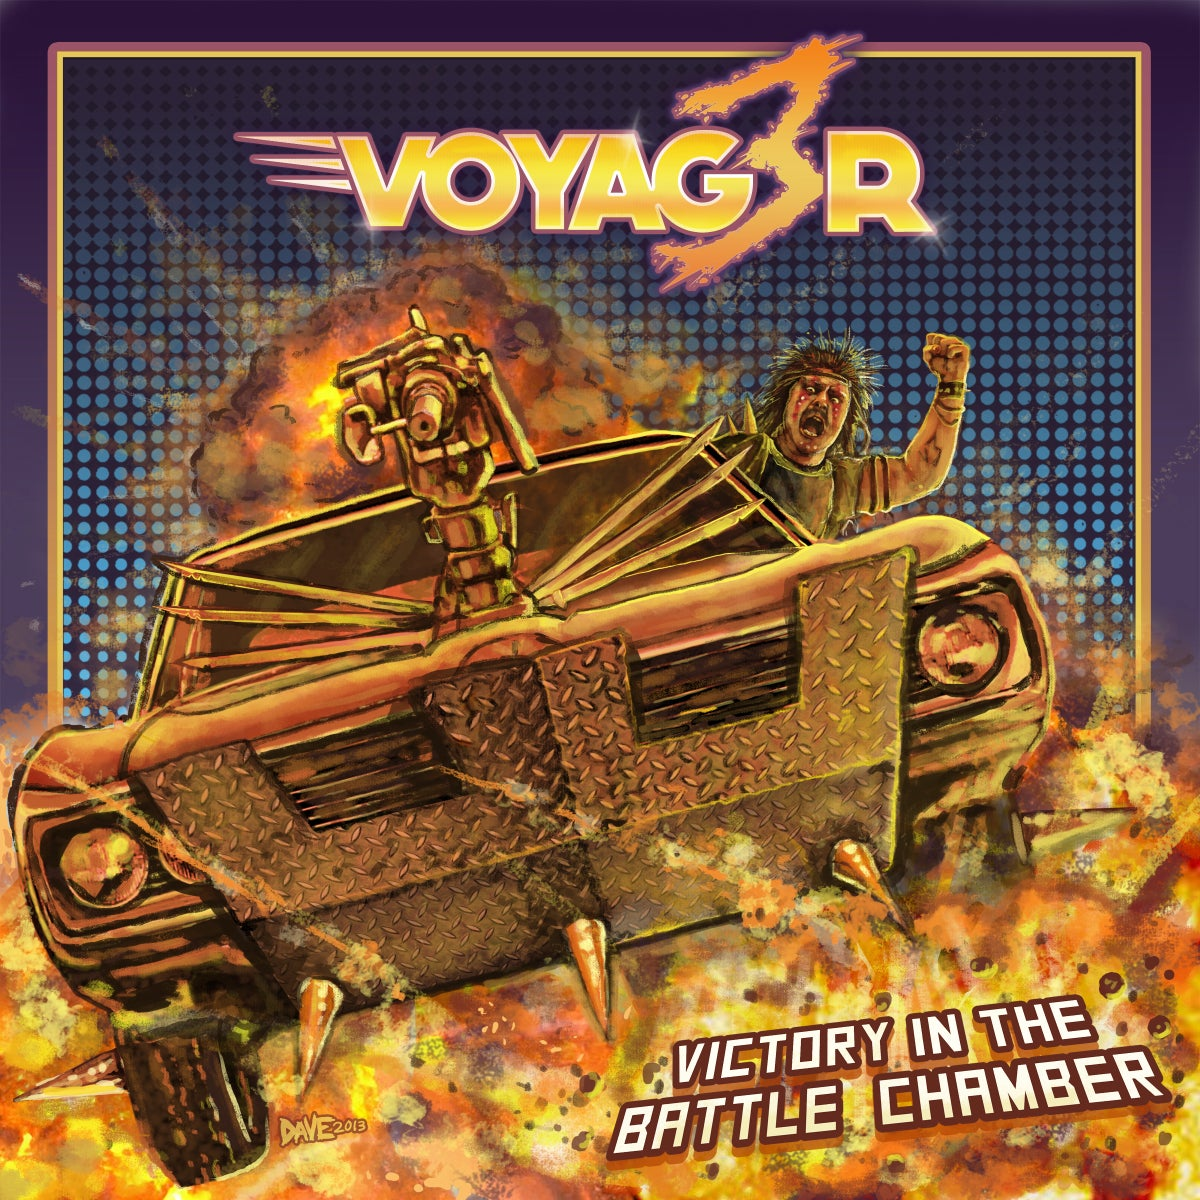 Image of Voyag3r - Victory In The Battle Chamber - 7 Inch Single + Download Code